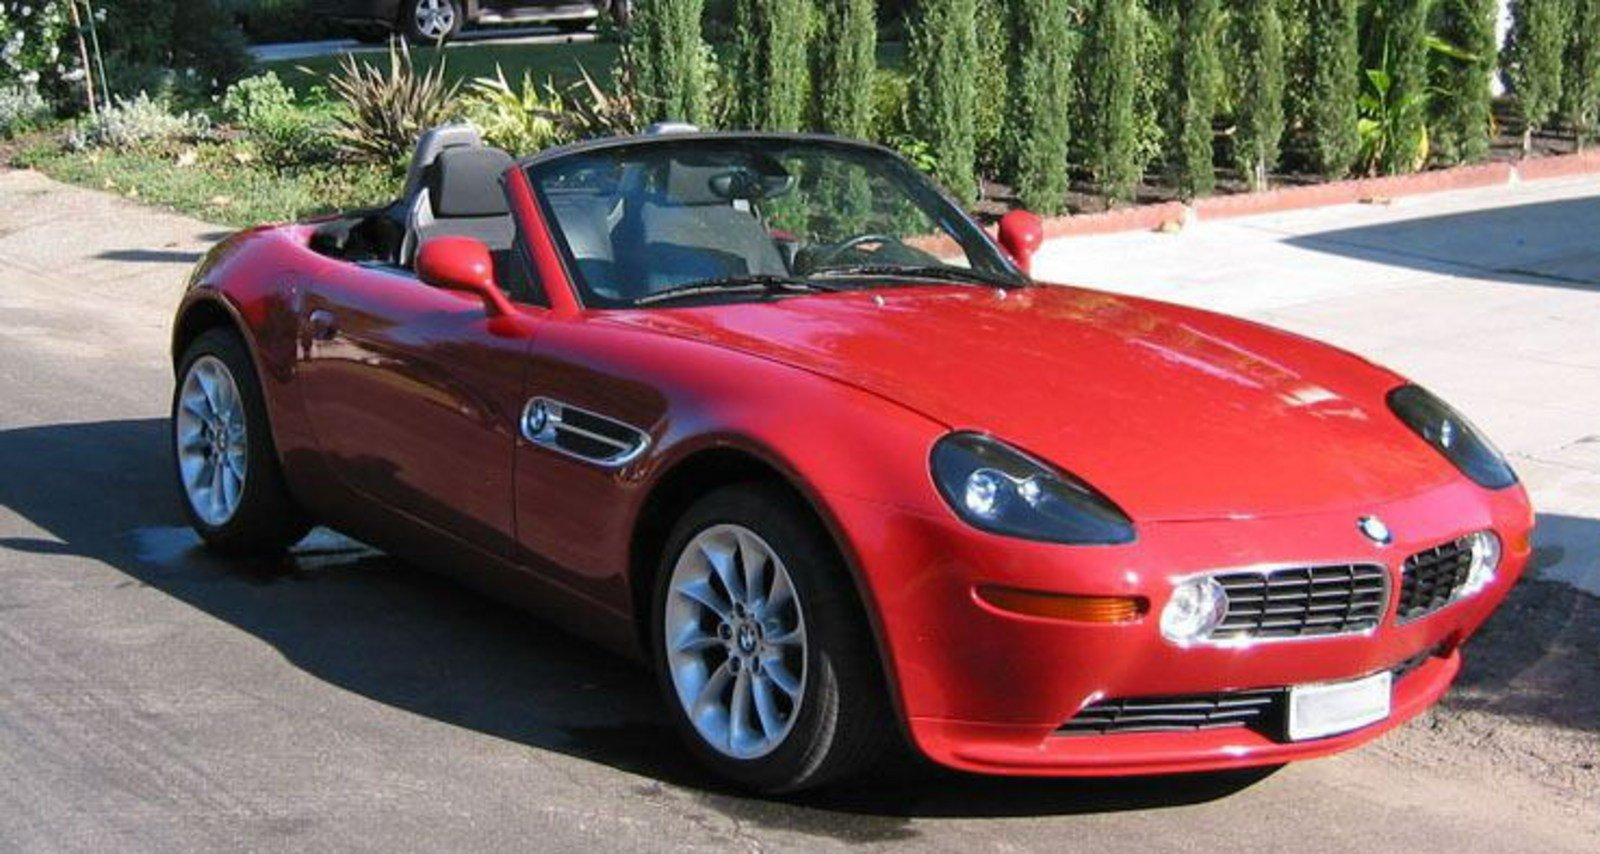 Bmw Z8 Roadster Replica Built On Z4 News Top Speed